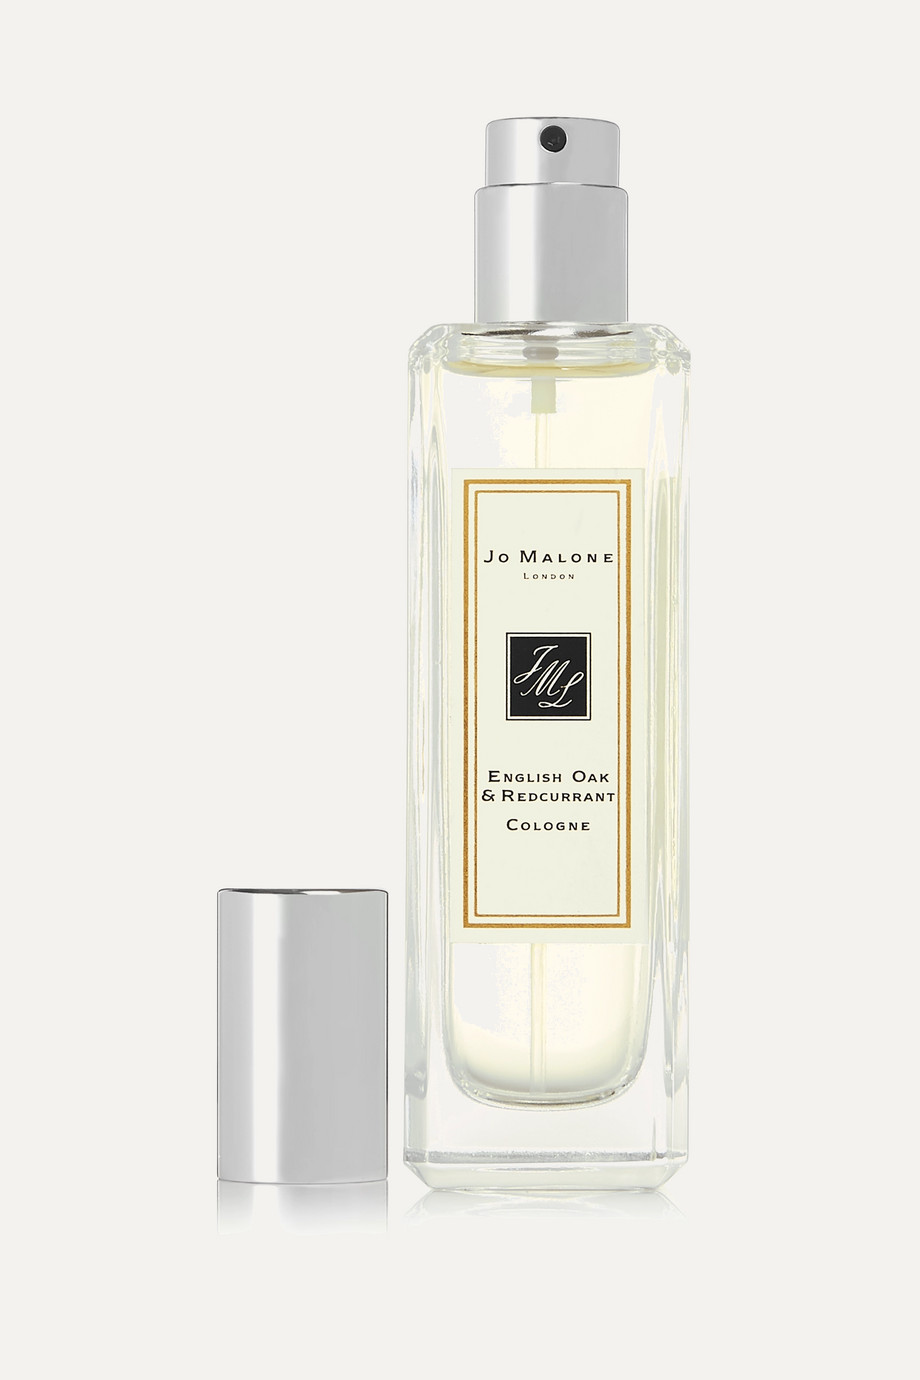 Jo Malone London English Oak & Redcurrant Cologne, 30ml